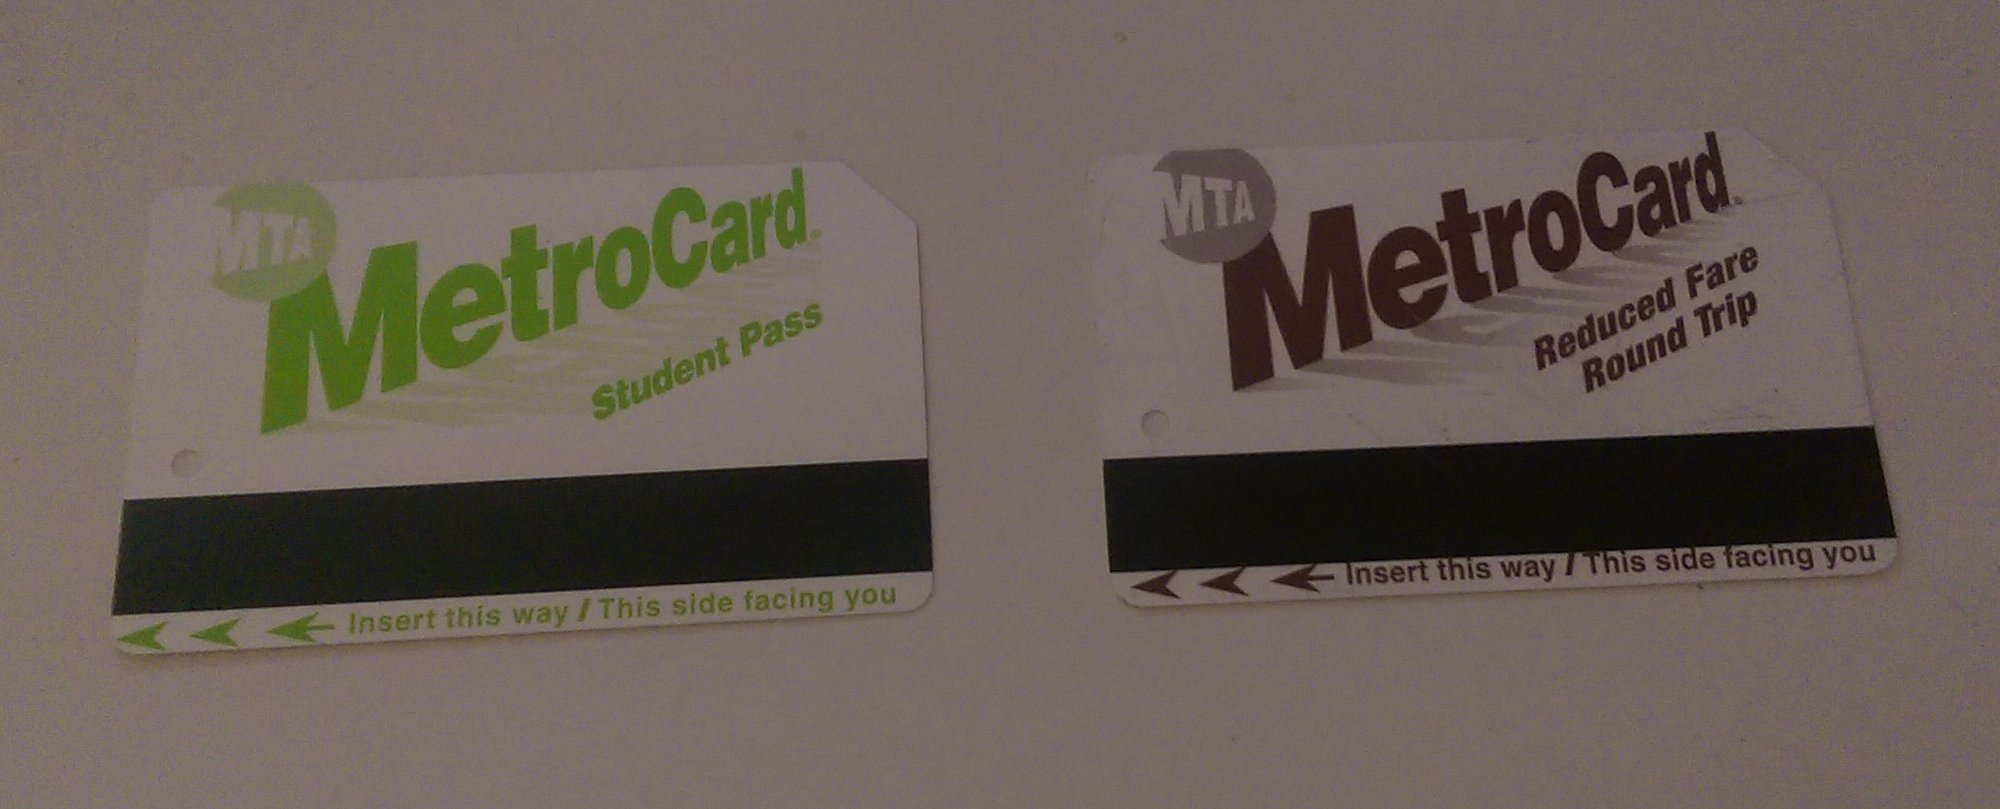 decoding the metrocard part 2 5 early results